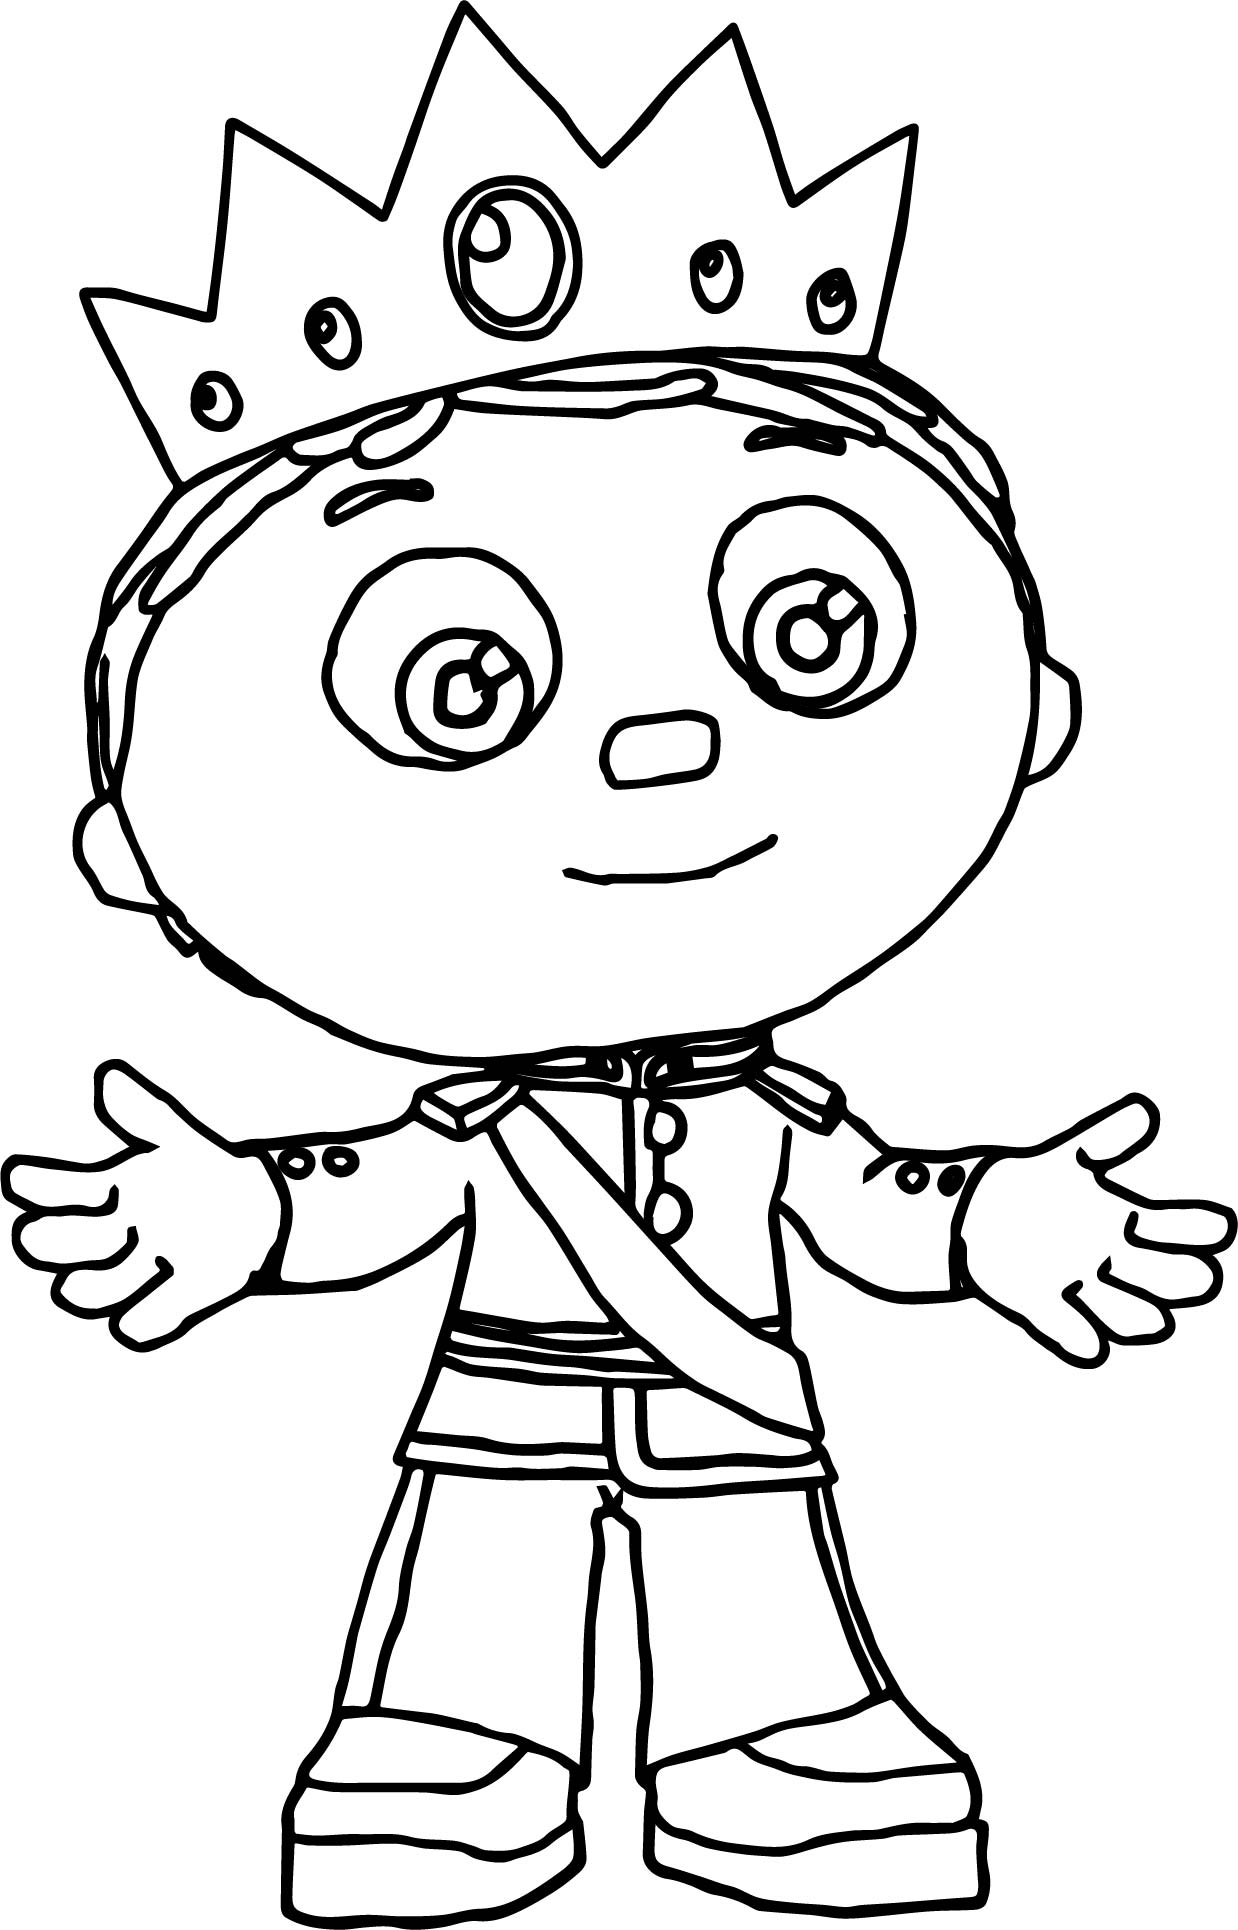 kids coloring pages printable zebra coloring pages free printable kids coloring pages kids printable coloring pages